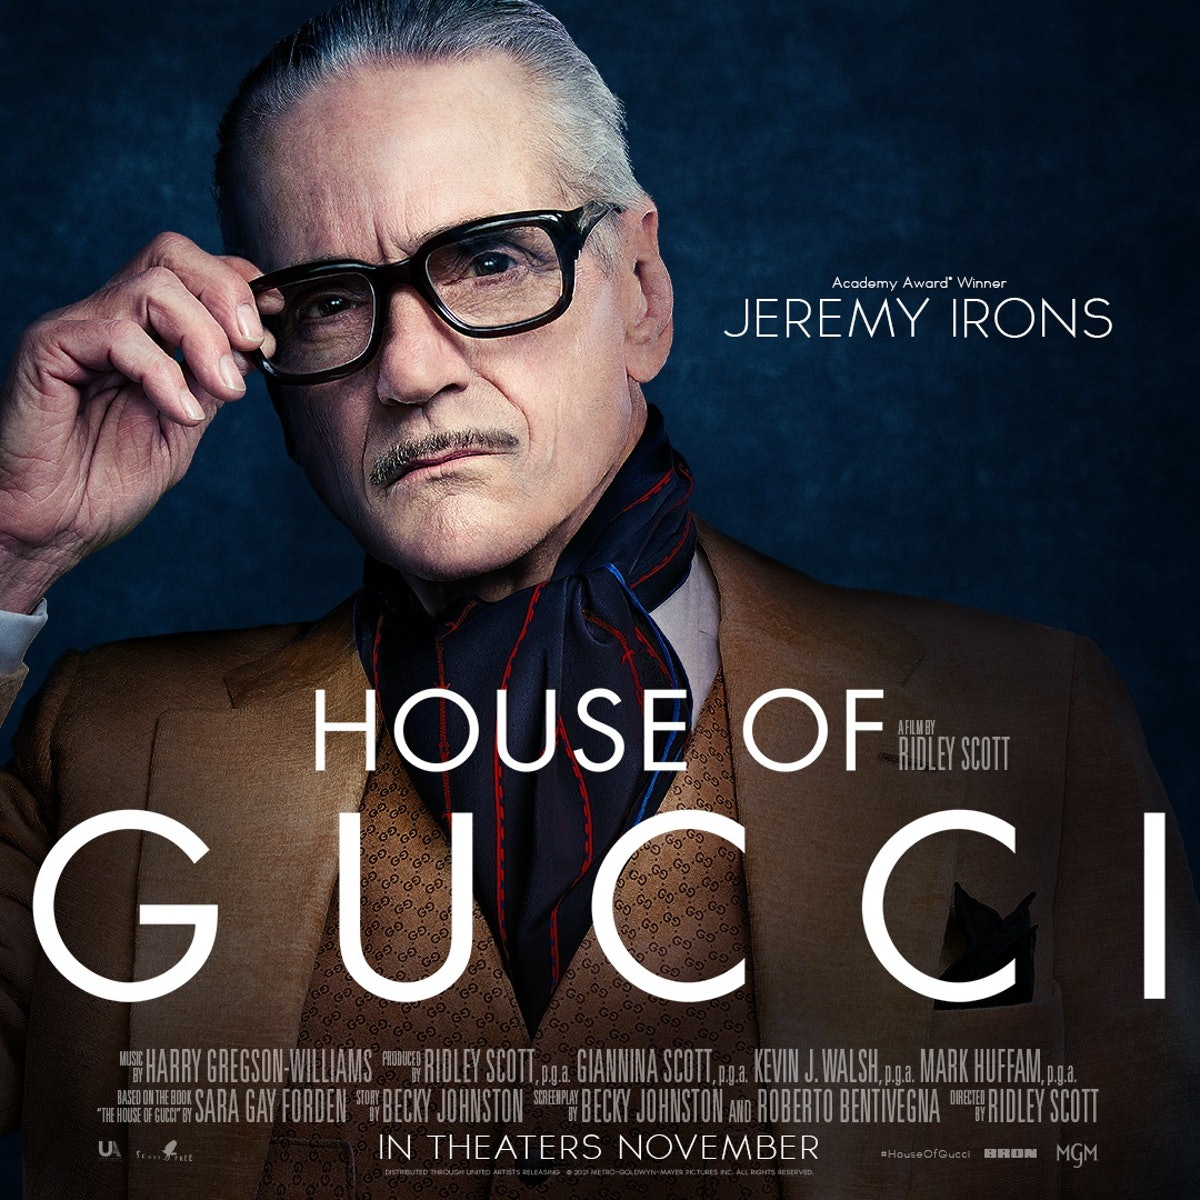 Jeremy Irons as a Gucci person.